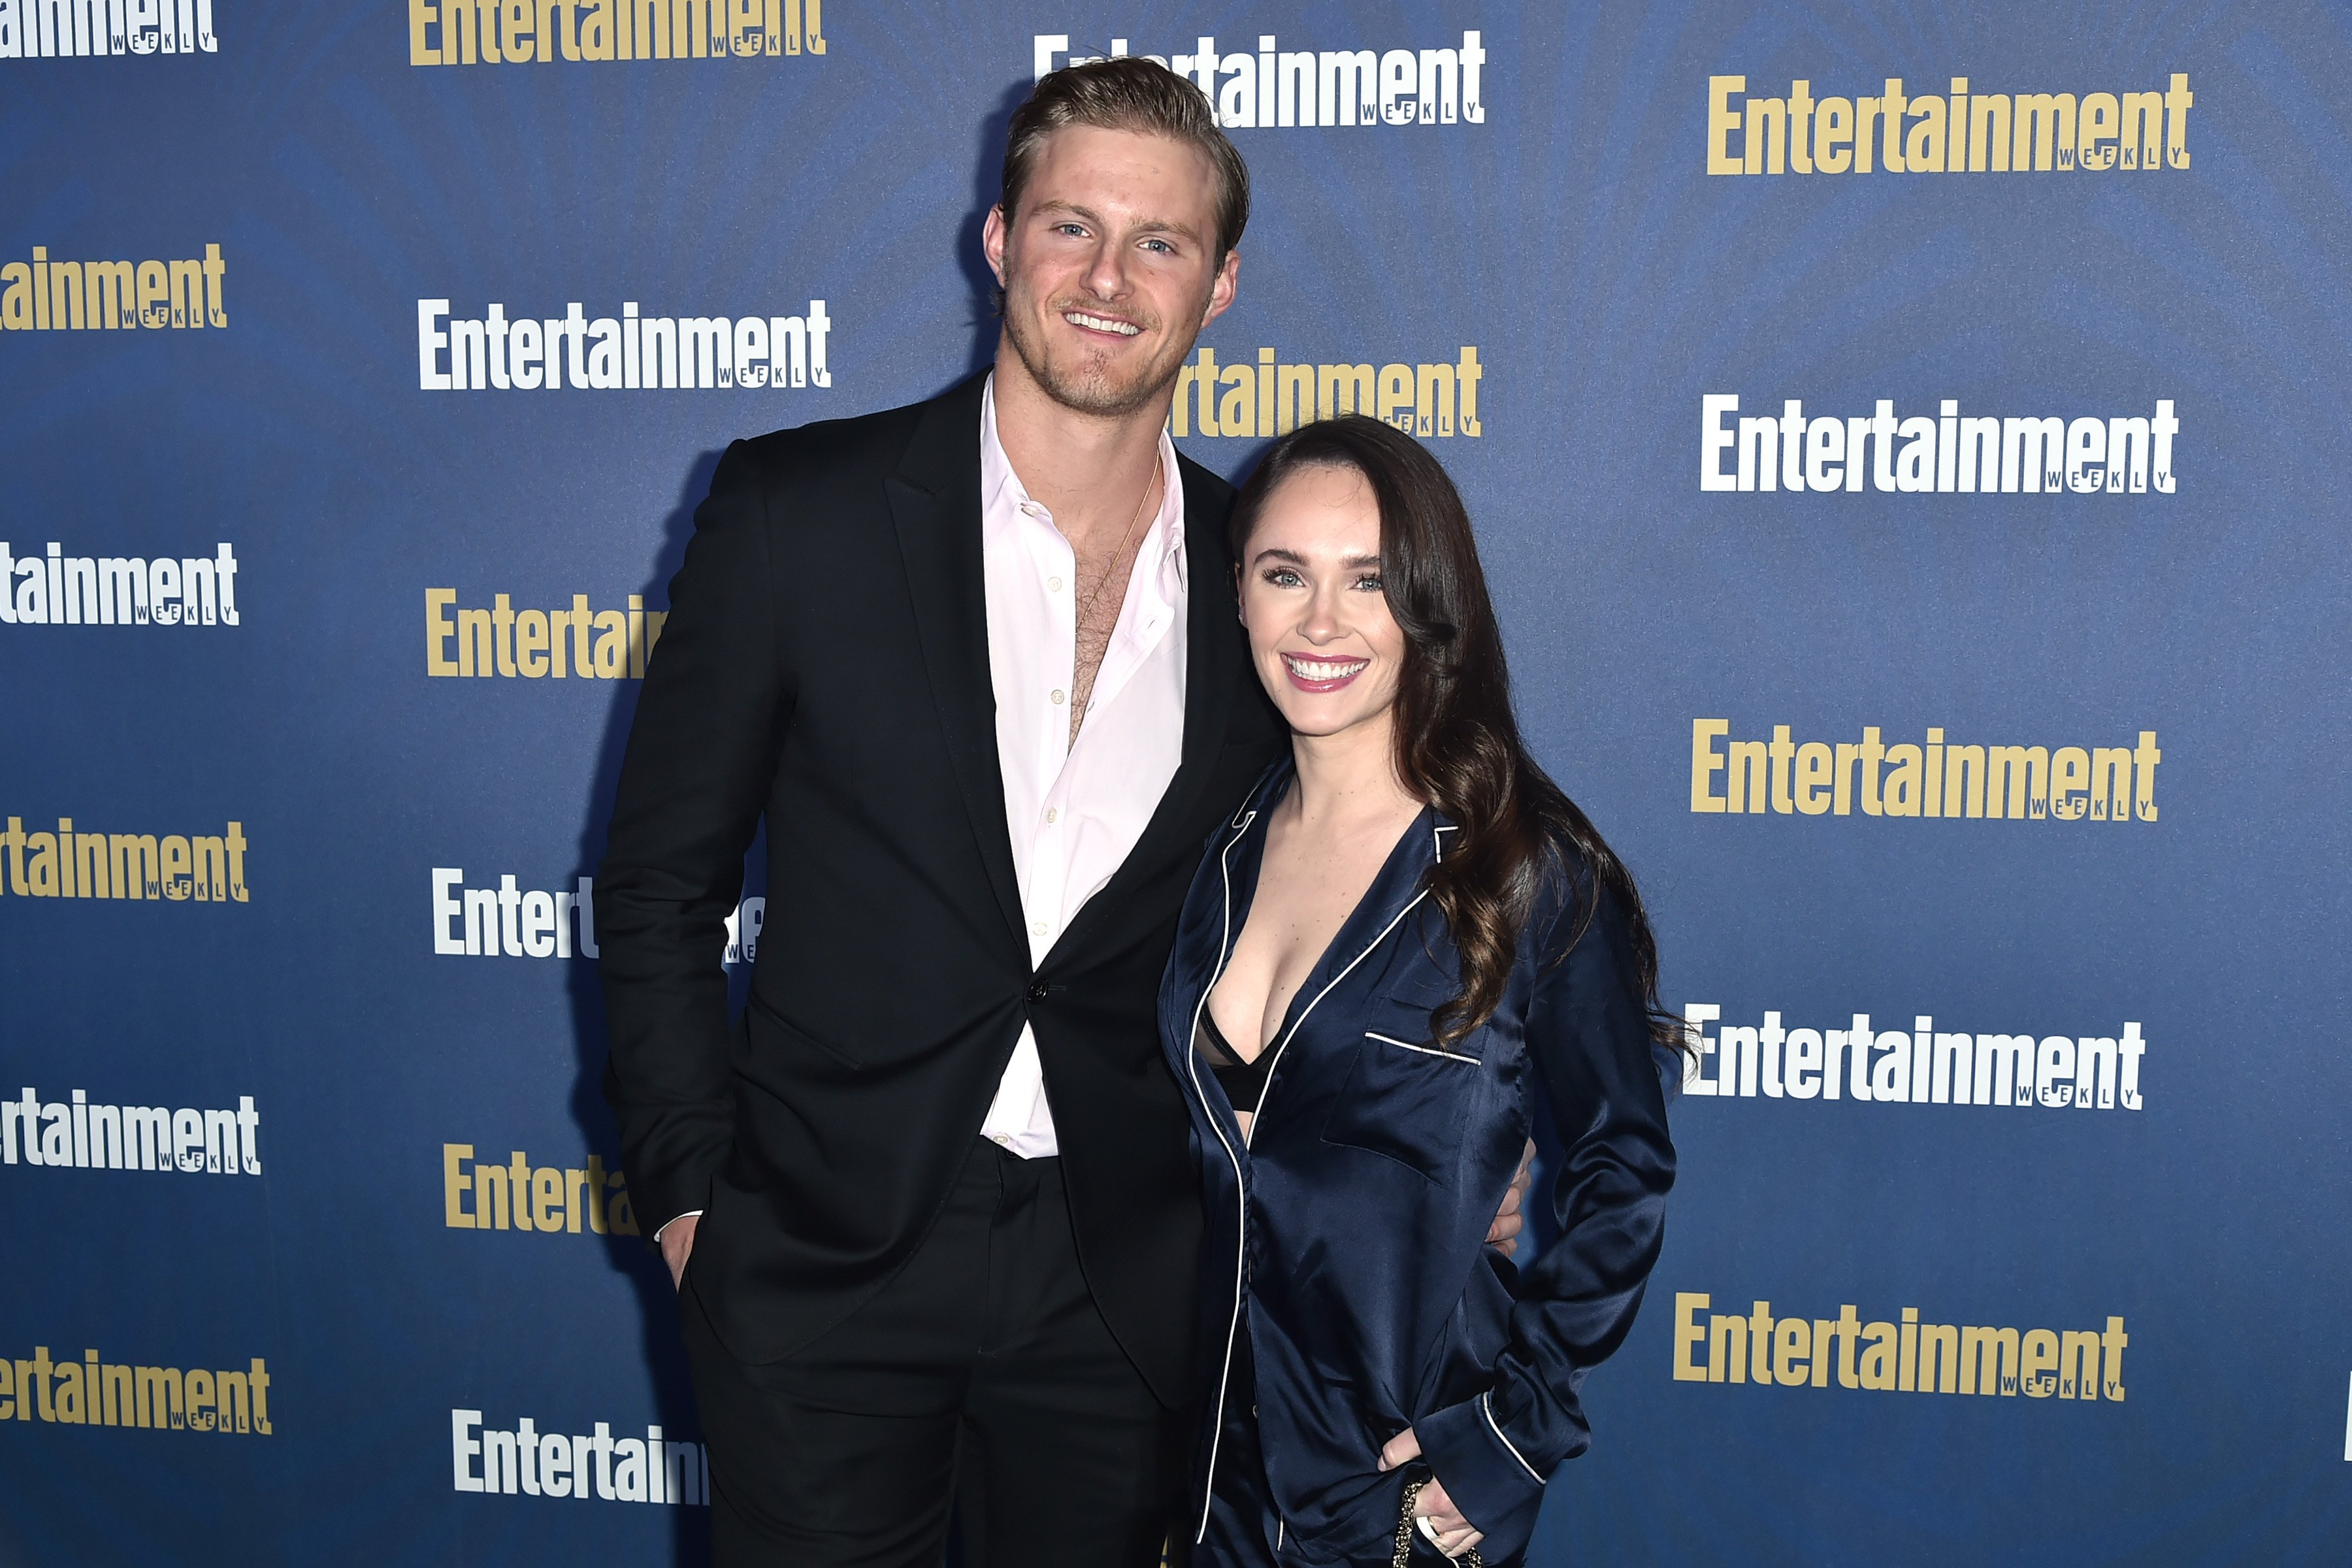 Alexander Ludwig and Kristy Dinsmore attend the Entertainment Weekly Honors Screen Actors Guild Awards Nominees at Chateau Marmont on January 18, 2020 | Photo: GettyImages